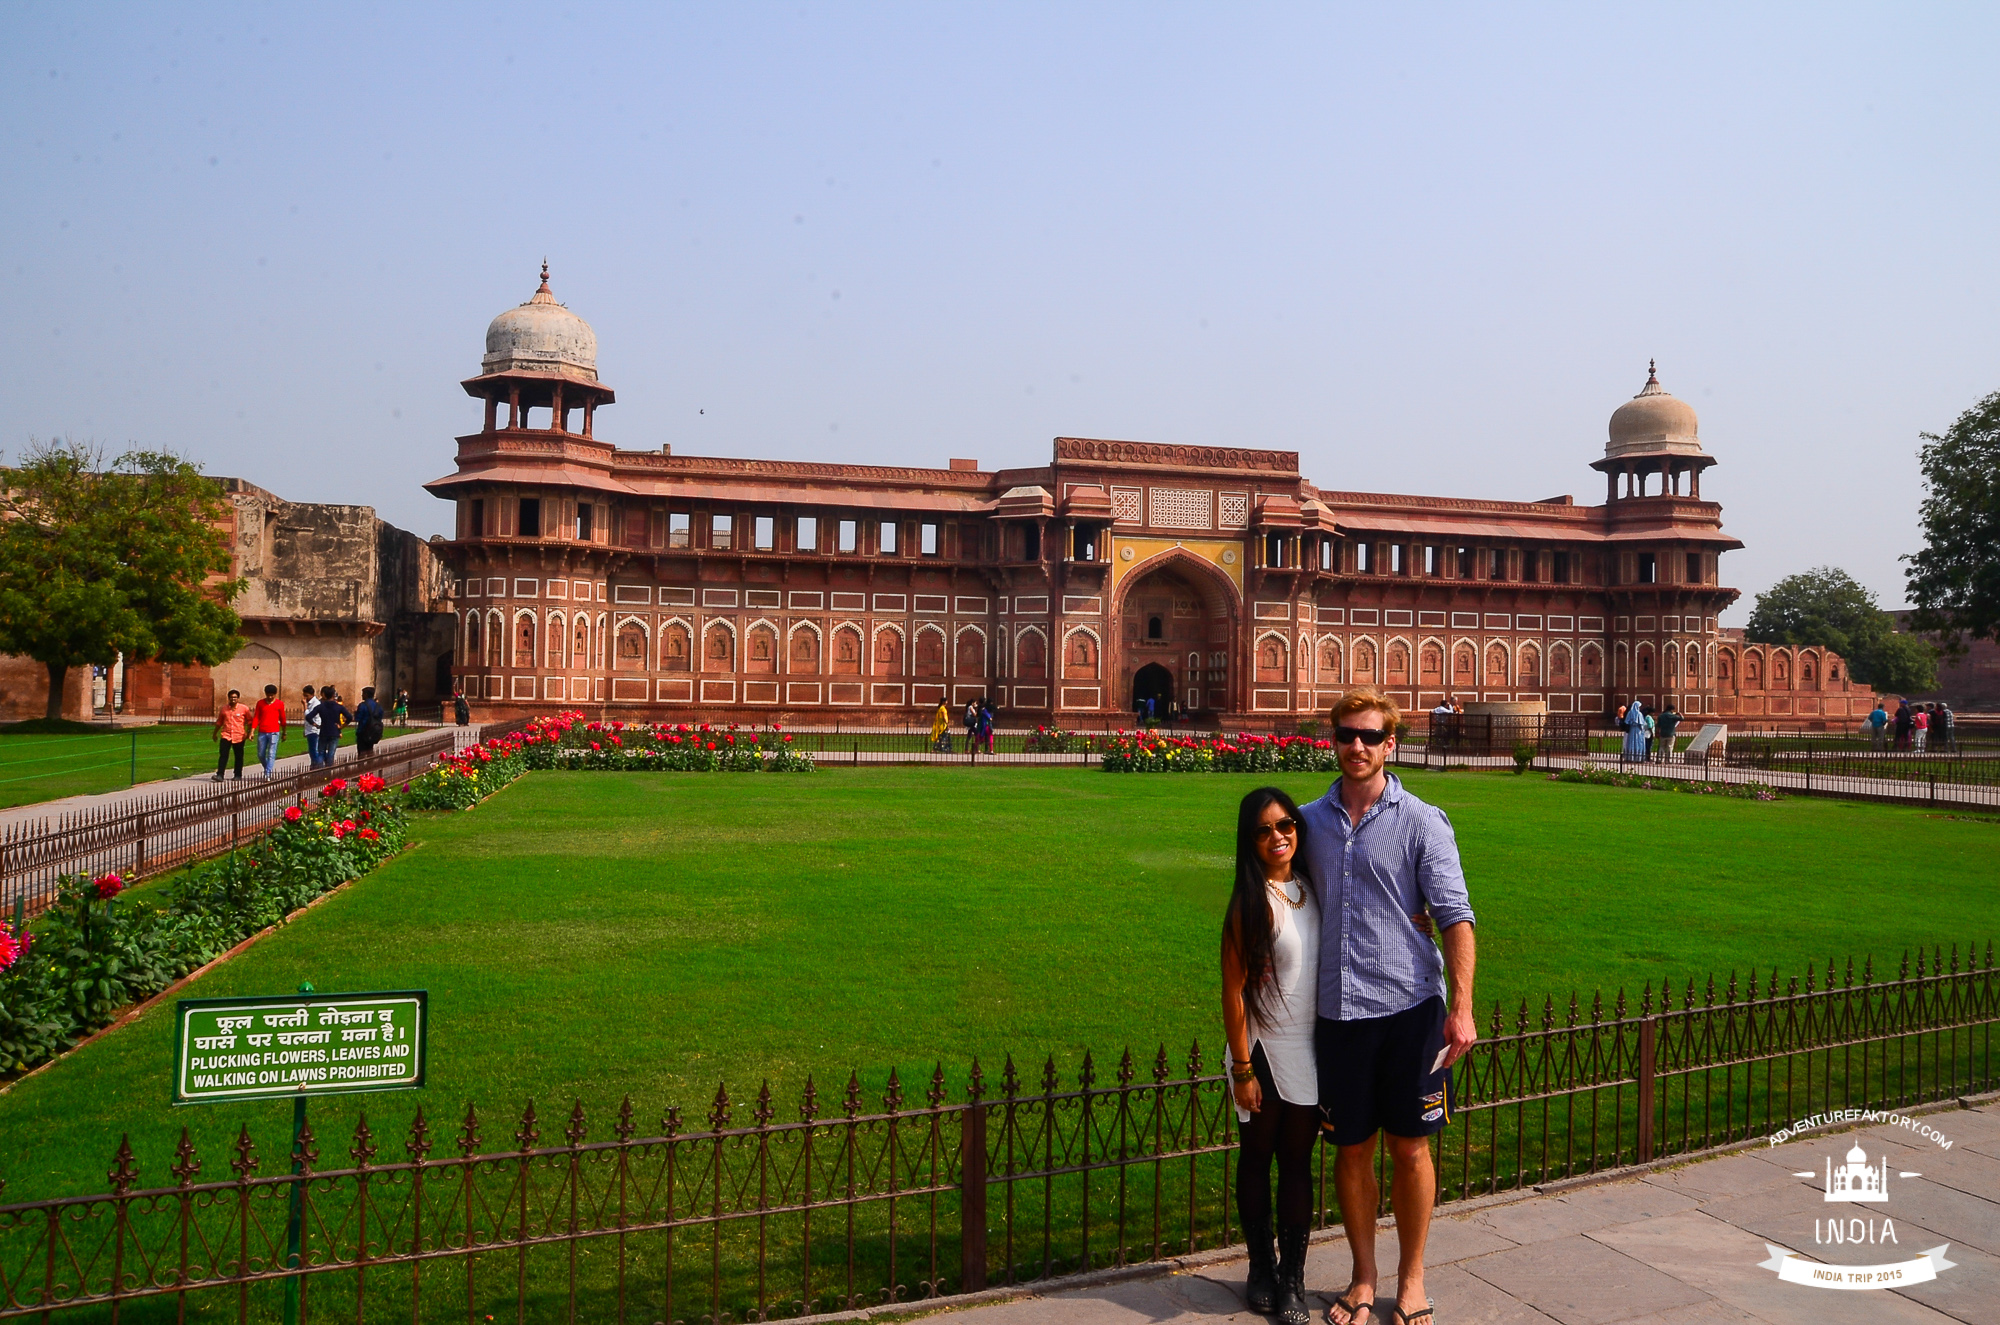 agra middle eastern singles Special offer overview, discover unforgettable india on the amazing highlights of rajasthan tour on departure 16-sep-18 - india can make a strong claim to be the most exciting and rewarding travel destination in the world.